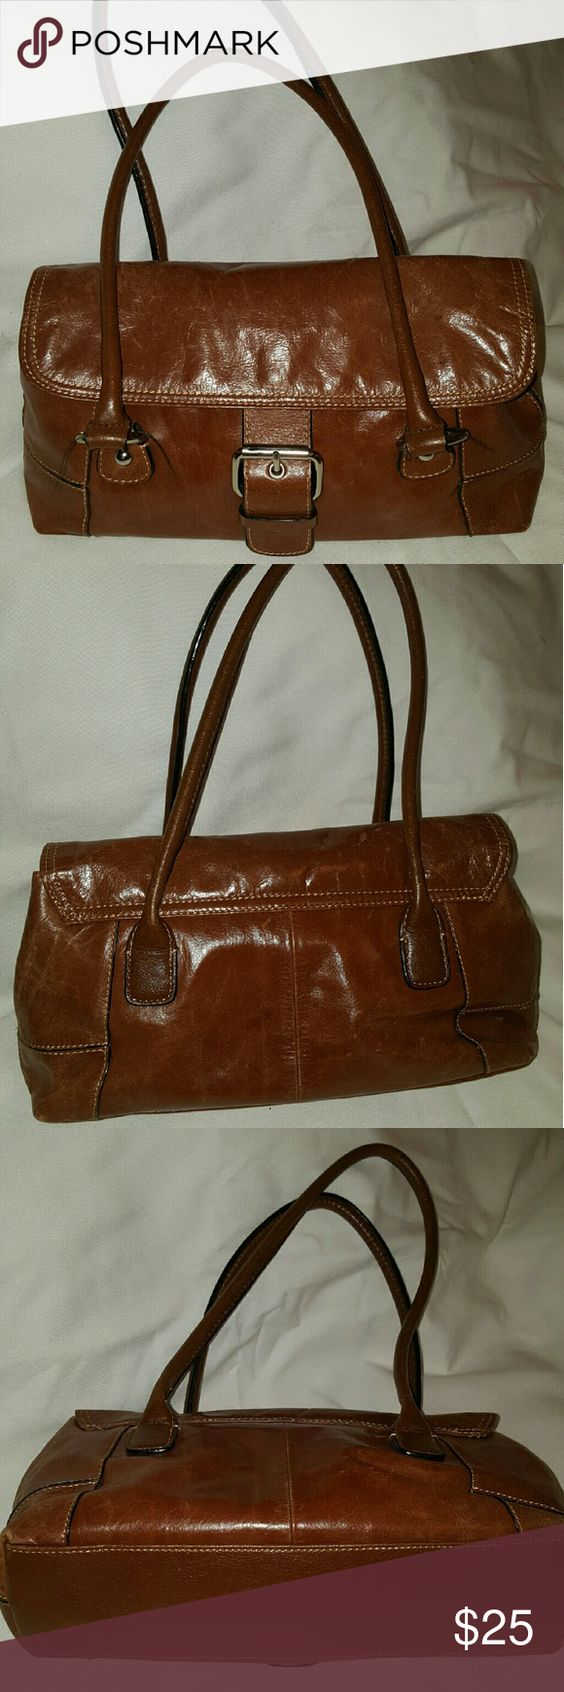 Giani Bernini women's shoulder Satchel / Handbag This is a pre-owed condition Giani Bernini women's Satchel Handbag / purse / bag brown Leather Size Medium  This bag is in great uesed condition.   ***please examine all the photos of the item carefully  to determine if the item is in satisfactory condition to your personal standards. Supersize the photo and study the photos in detail.  The photos provided form part of the item description and condition.  The photos in the listing is of the…